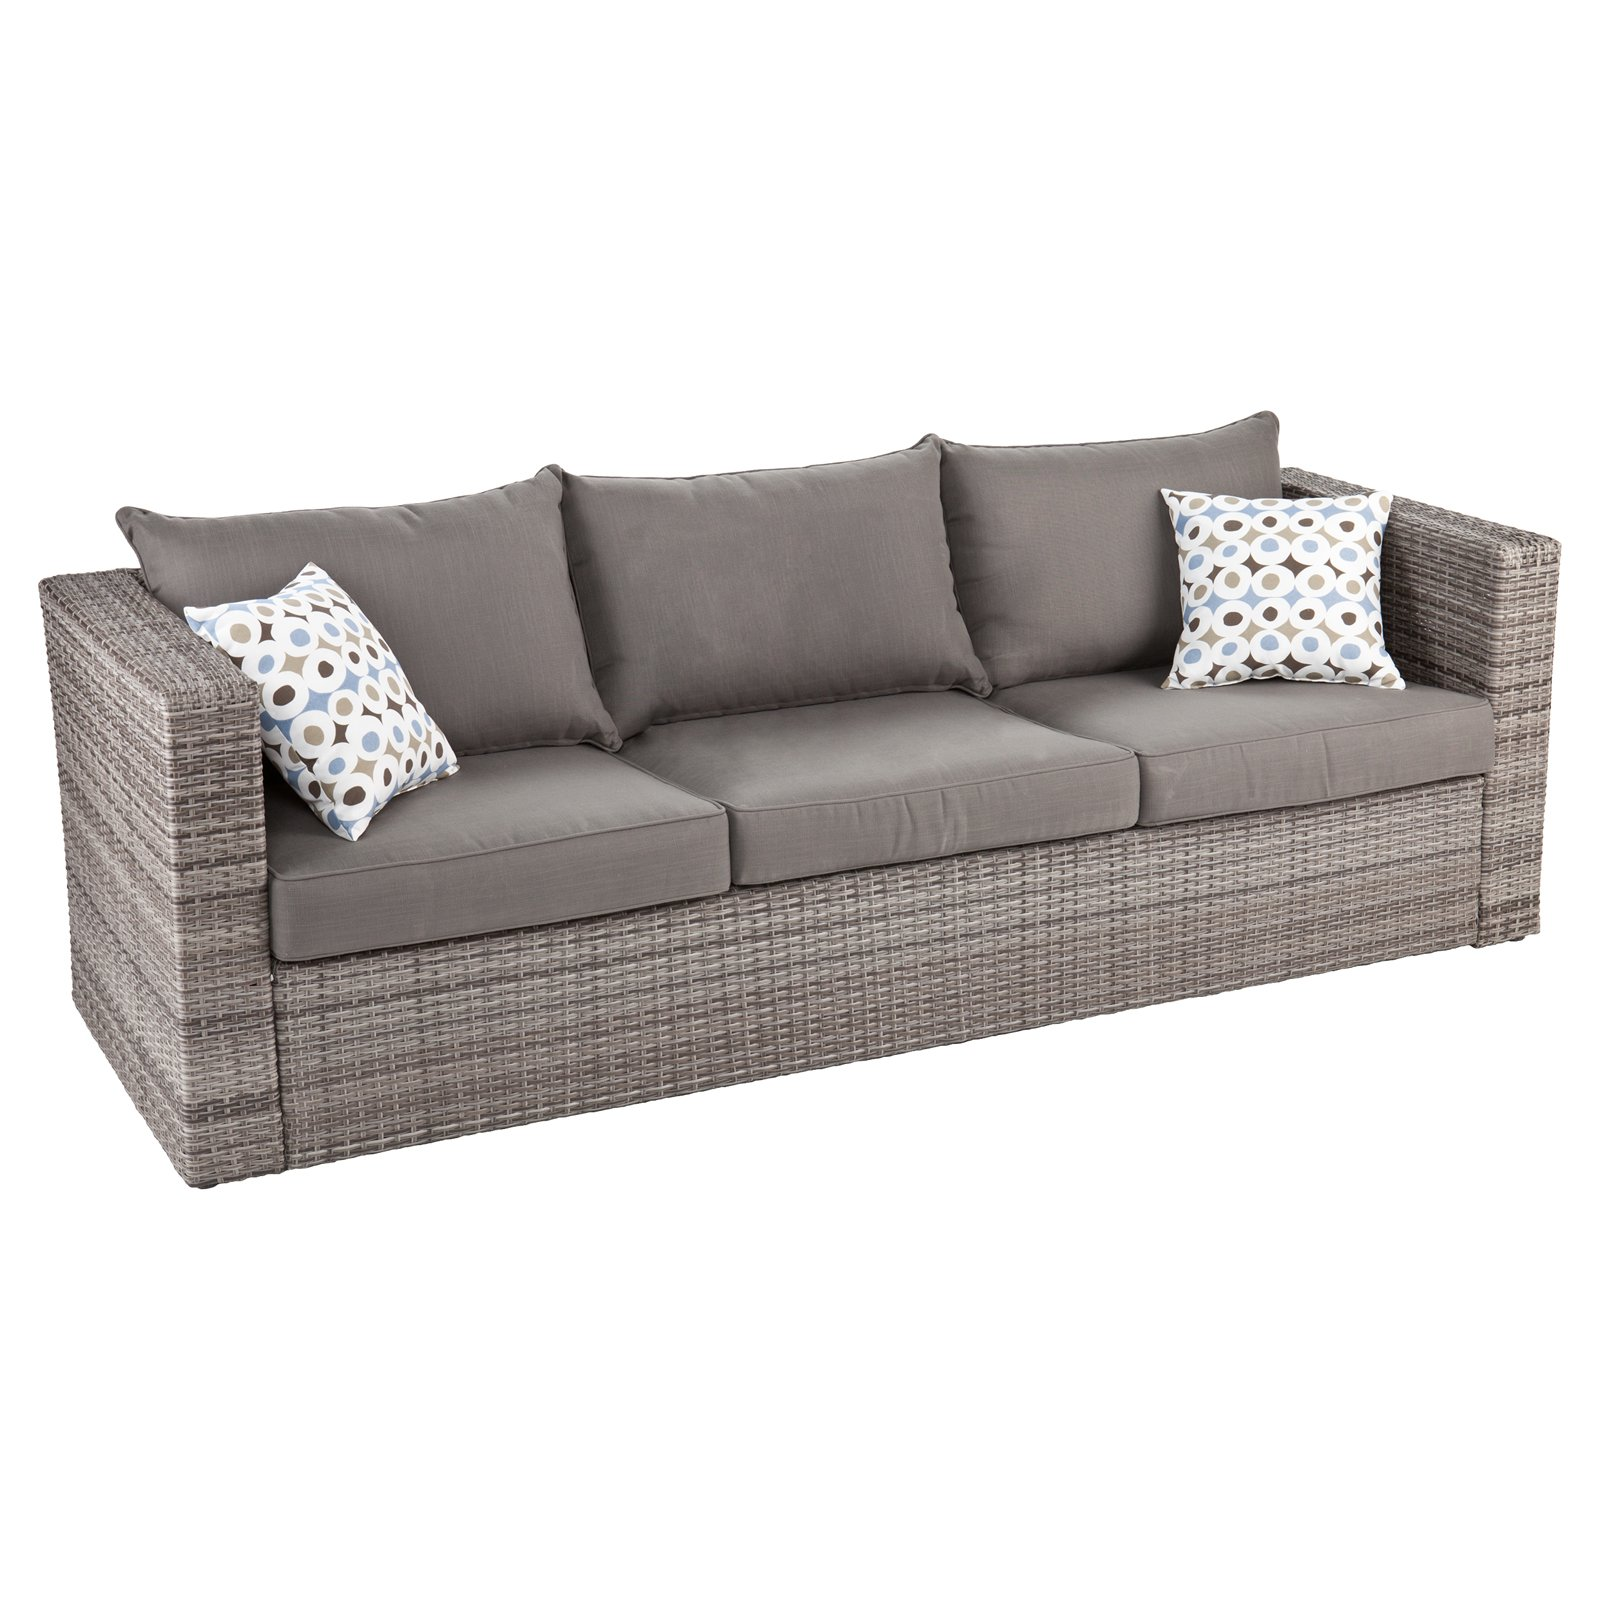 Southern Enterprises Talia Outdoor Deep Seating Sofa